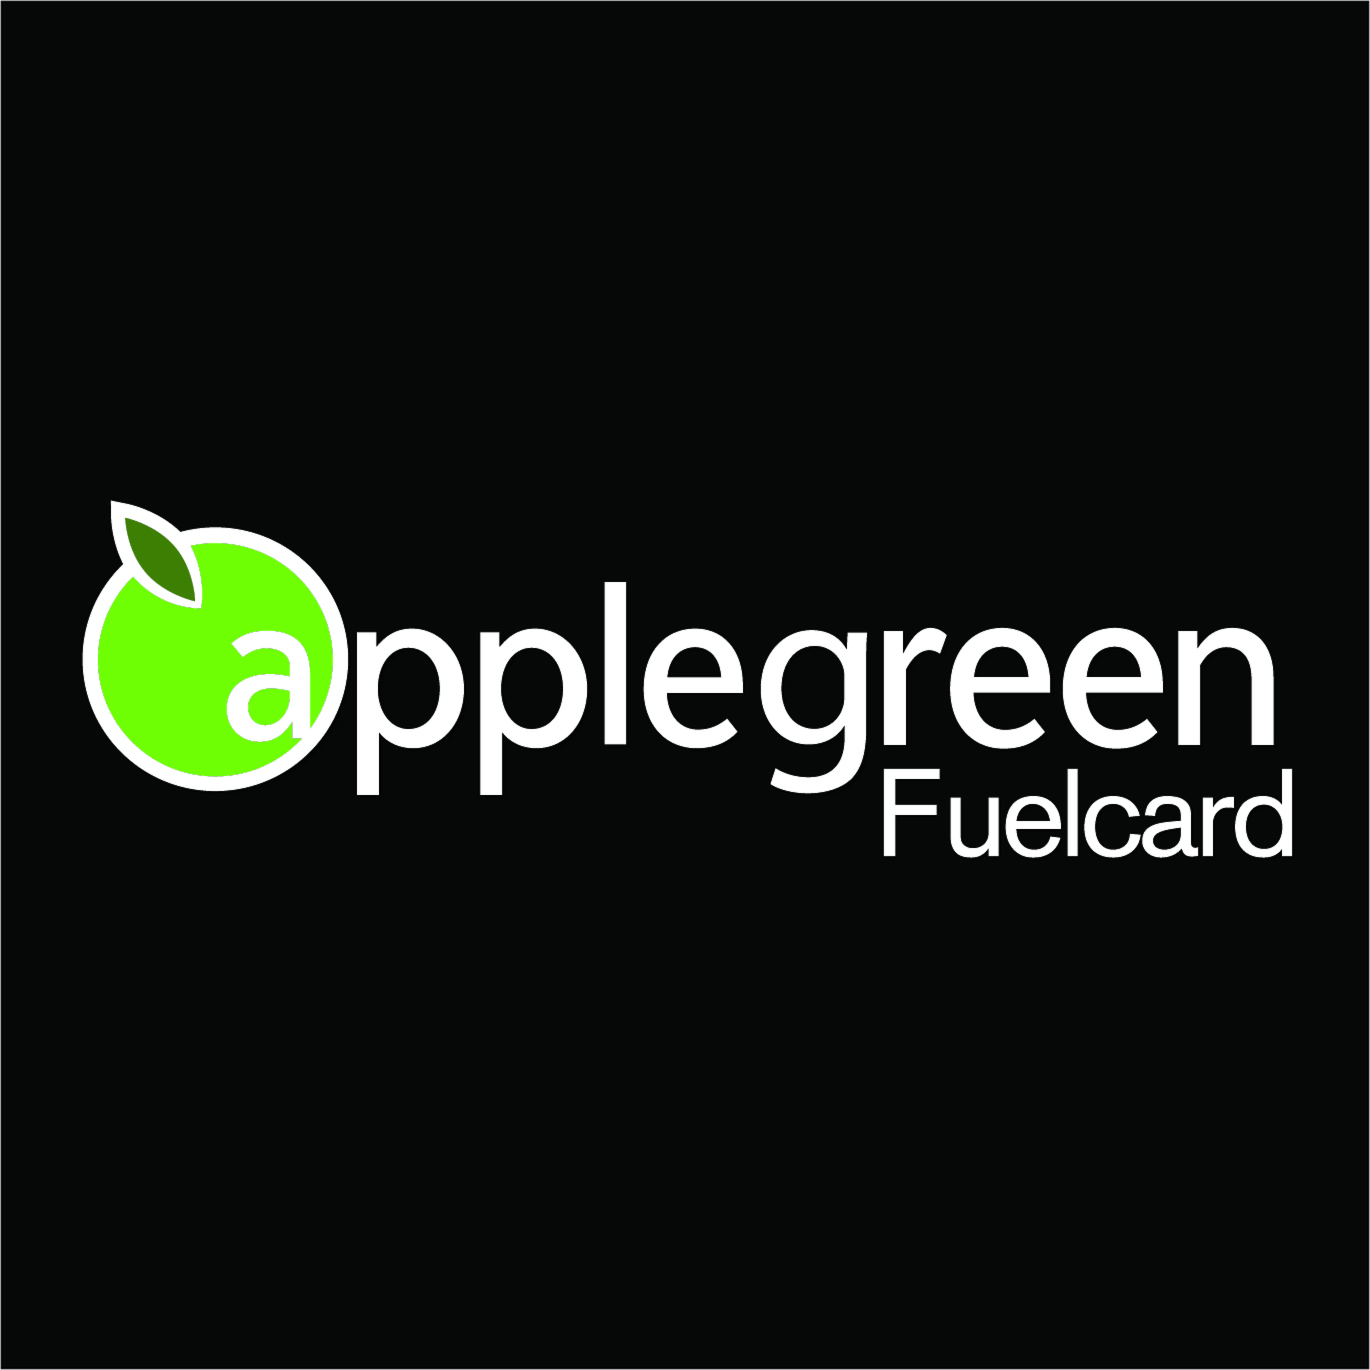 Applegreen Fuel Card